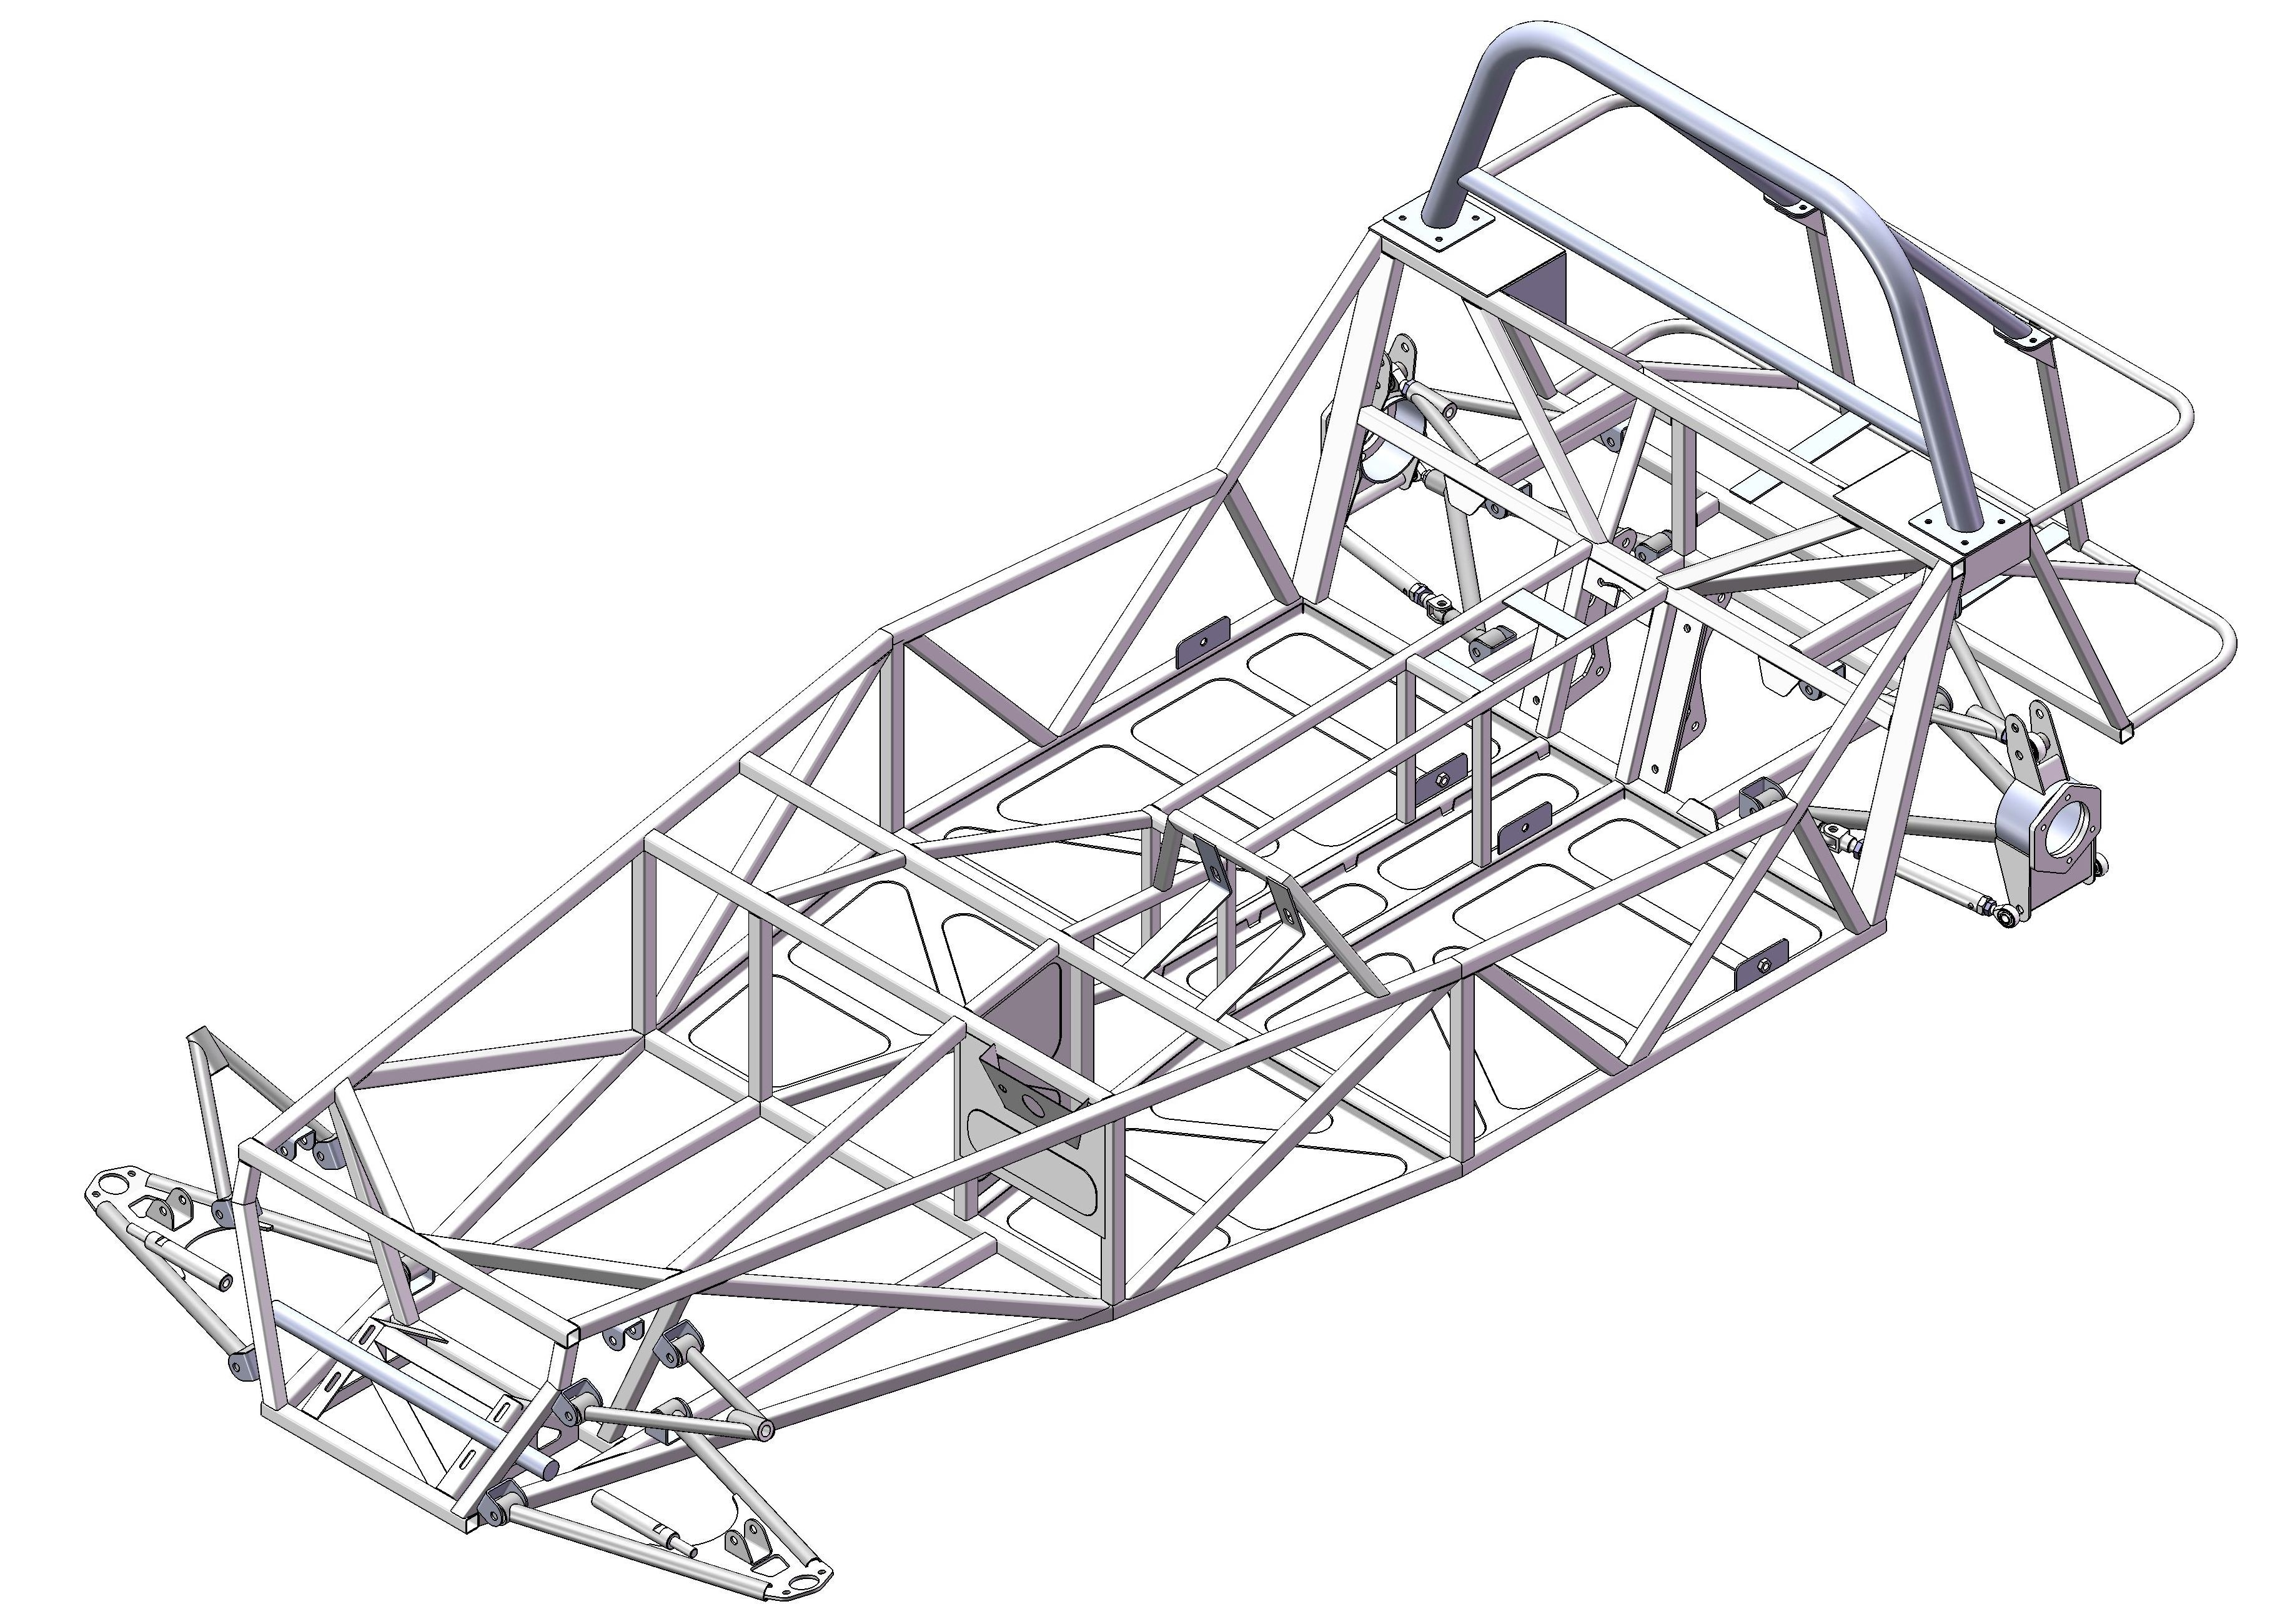 Diagram Of Car Chassis Pin by Martin Markov On Projects to Try Pinterest Of Diagram Of Car Chassis